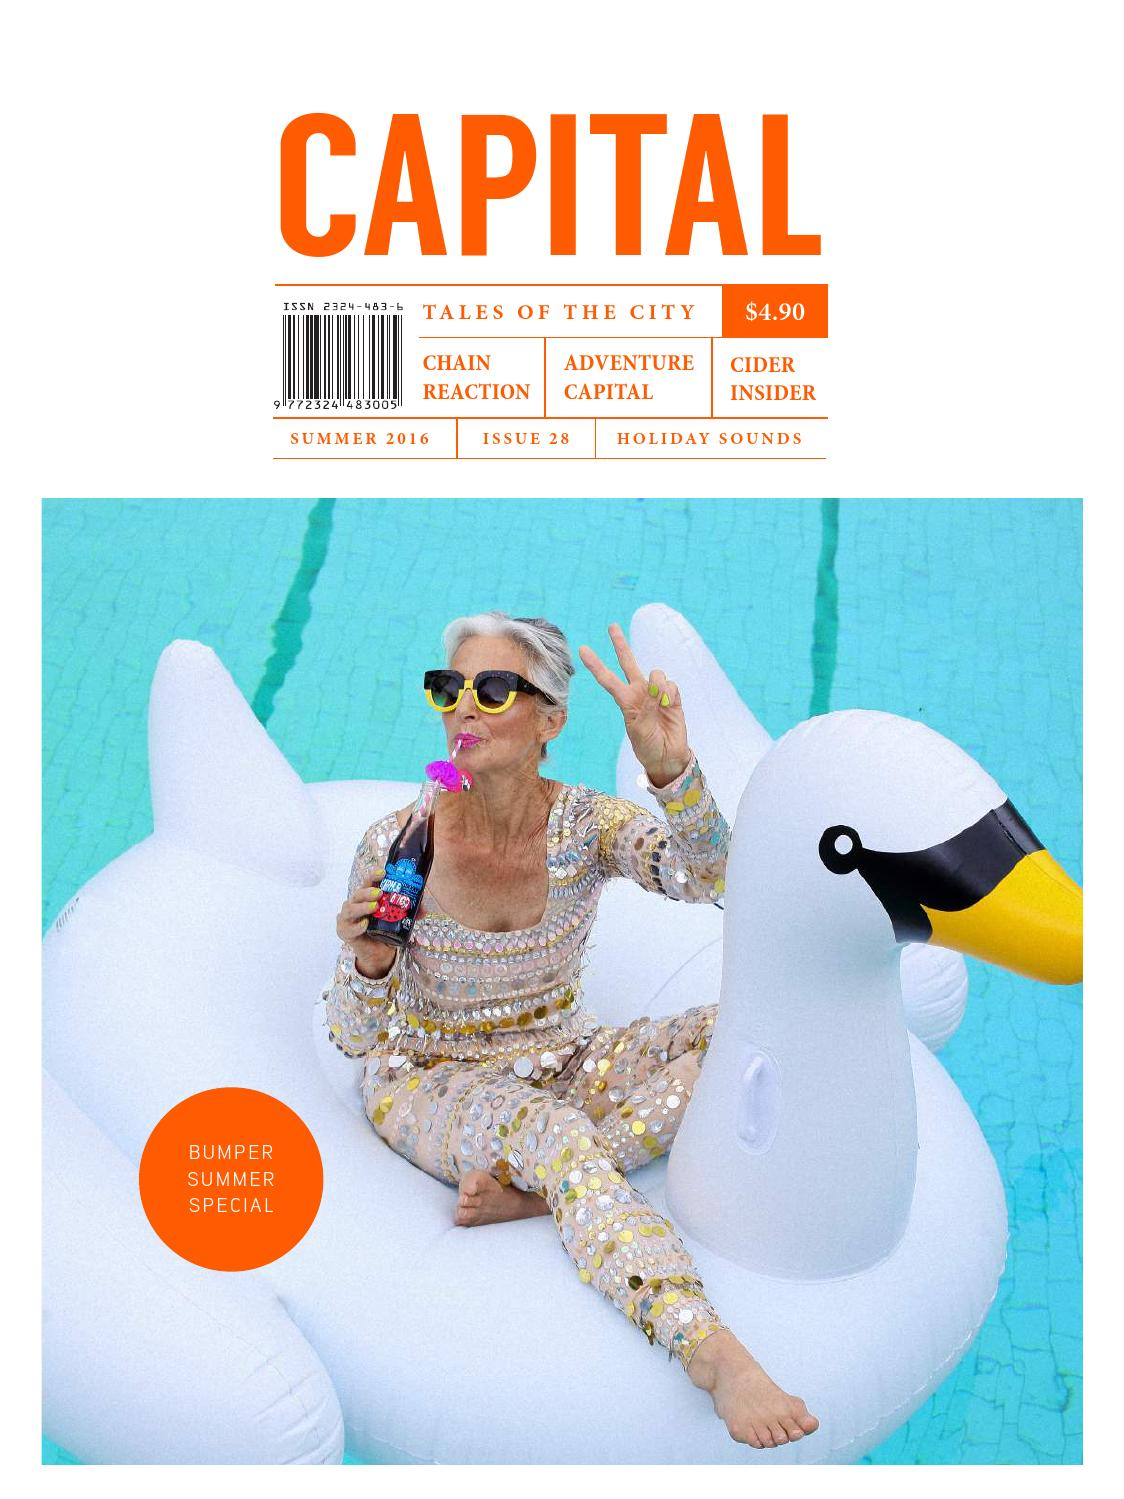 Capital 28 By Nz Reads Issuu Sydney Xmas Lights 4 Drysdale Circuit Beaumont Hills Christmas